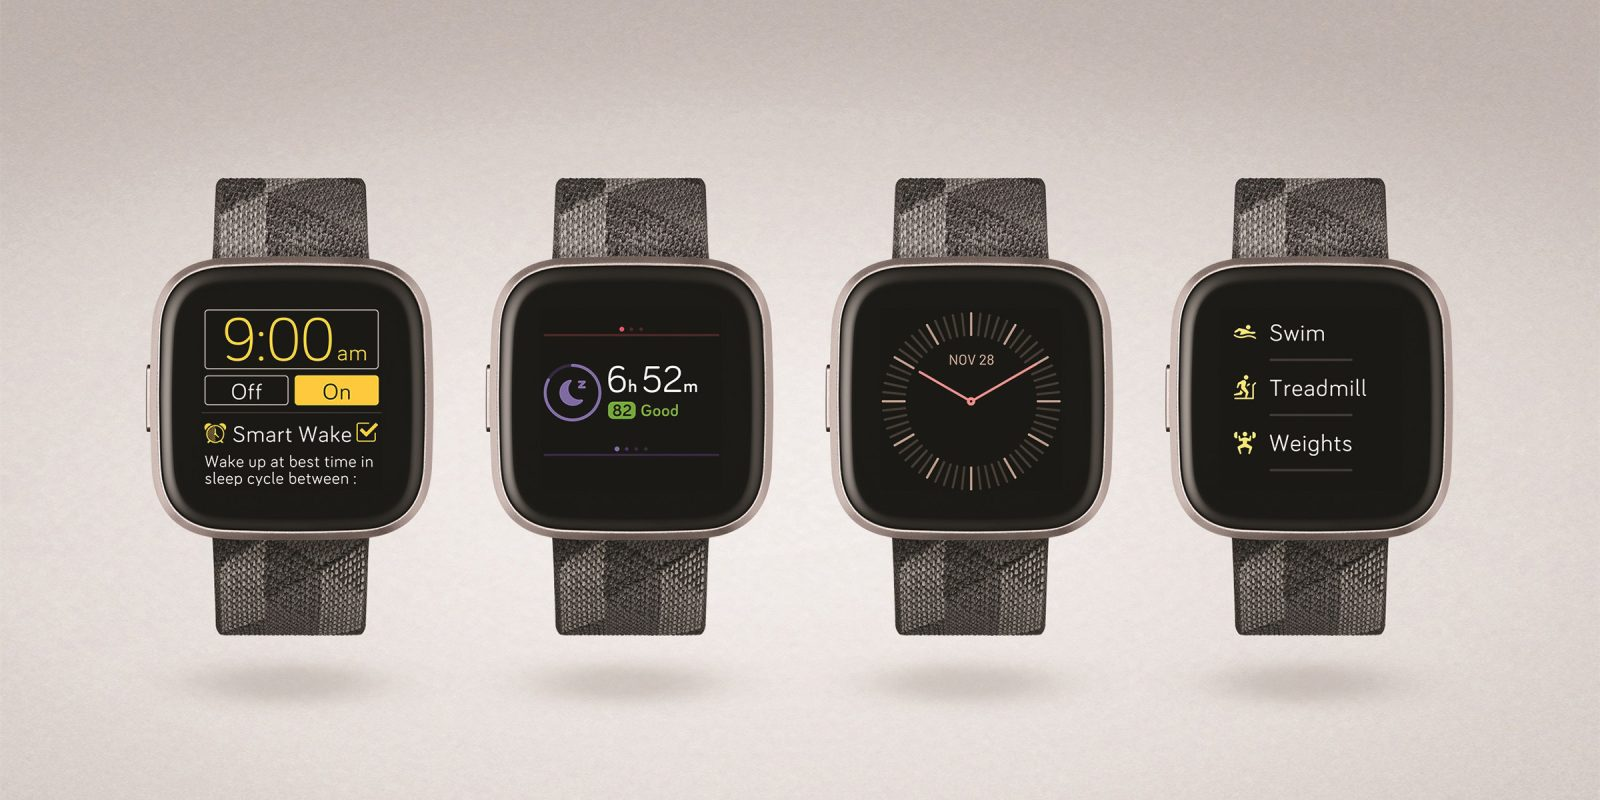 Fitbit OS update improves heart rate tracking, on-device watch face adjustments